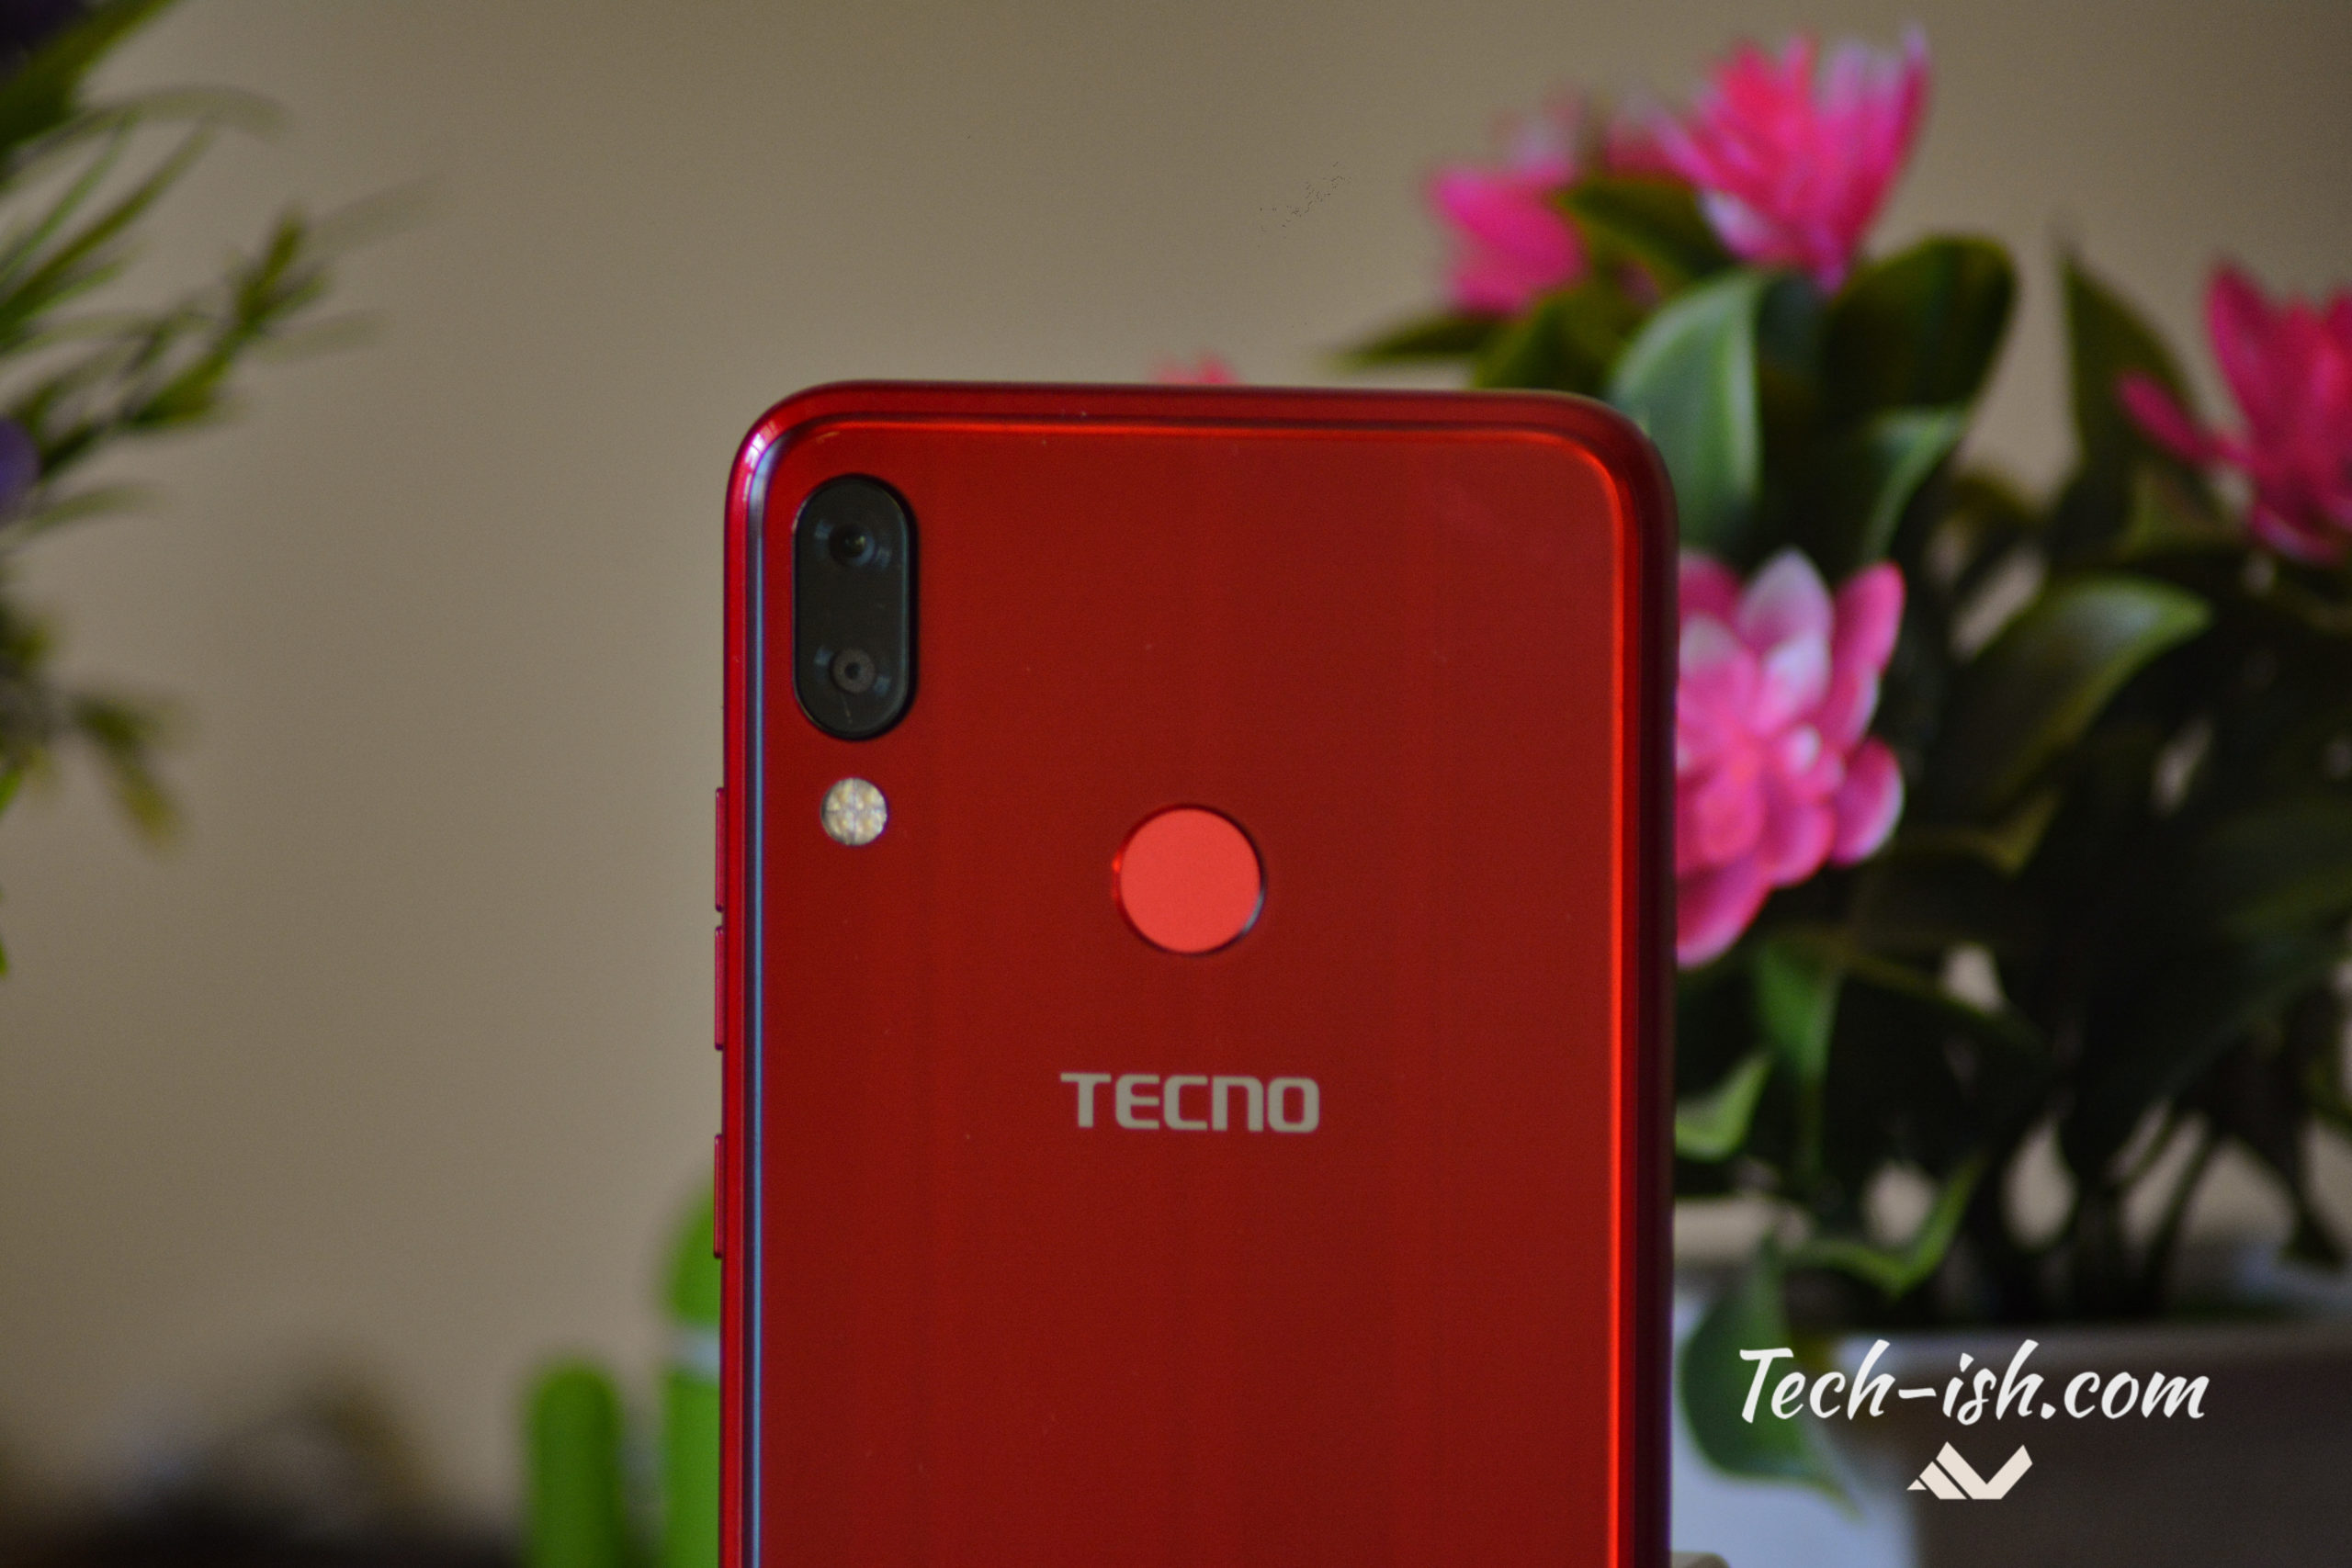 TECNO Camon 11 Camera Review - What to expect | Techish Kenya